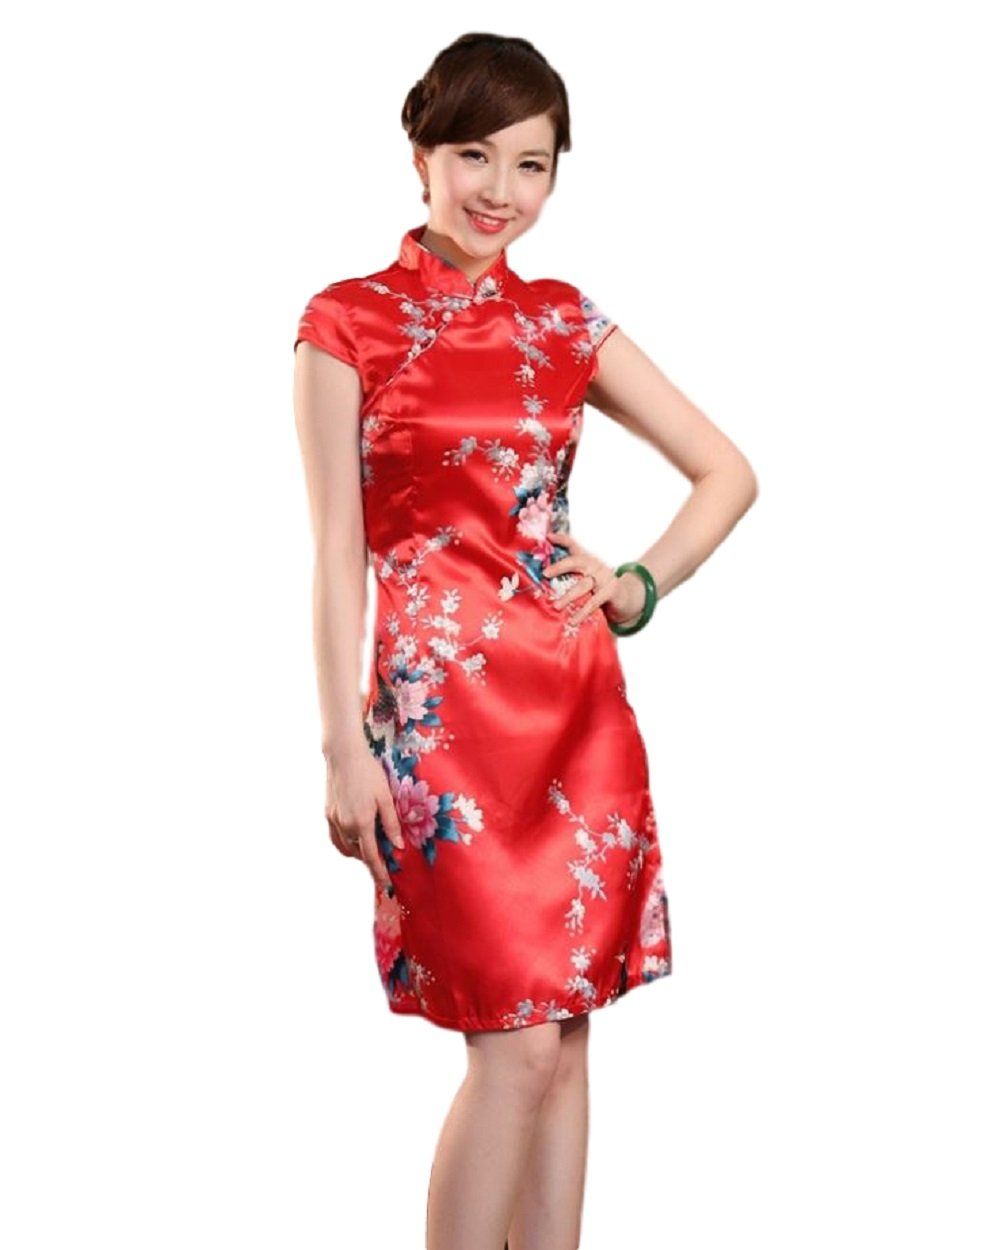 Women's Mini Chinese Dress Cheongsam [Red/Blue/Pink] Mandarin Gown Qipao China Dress